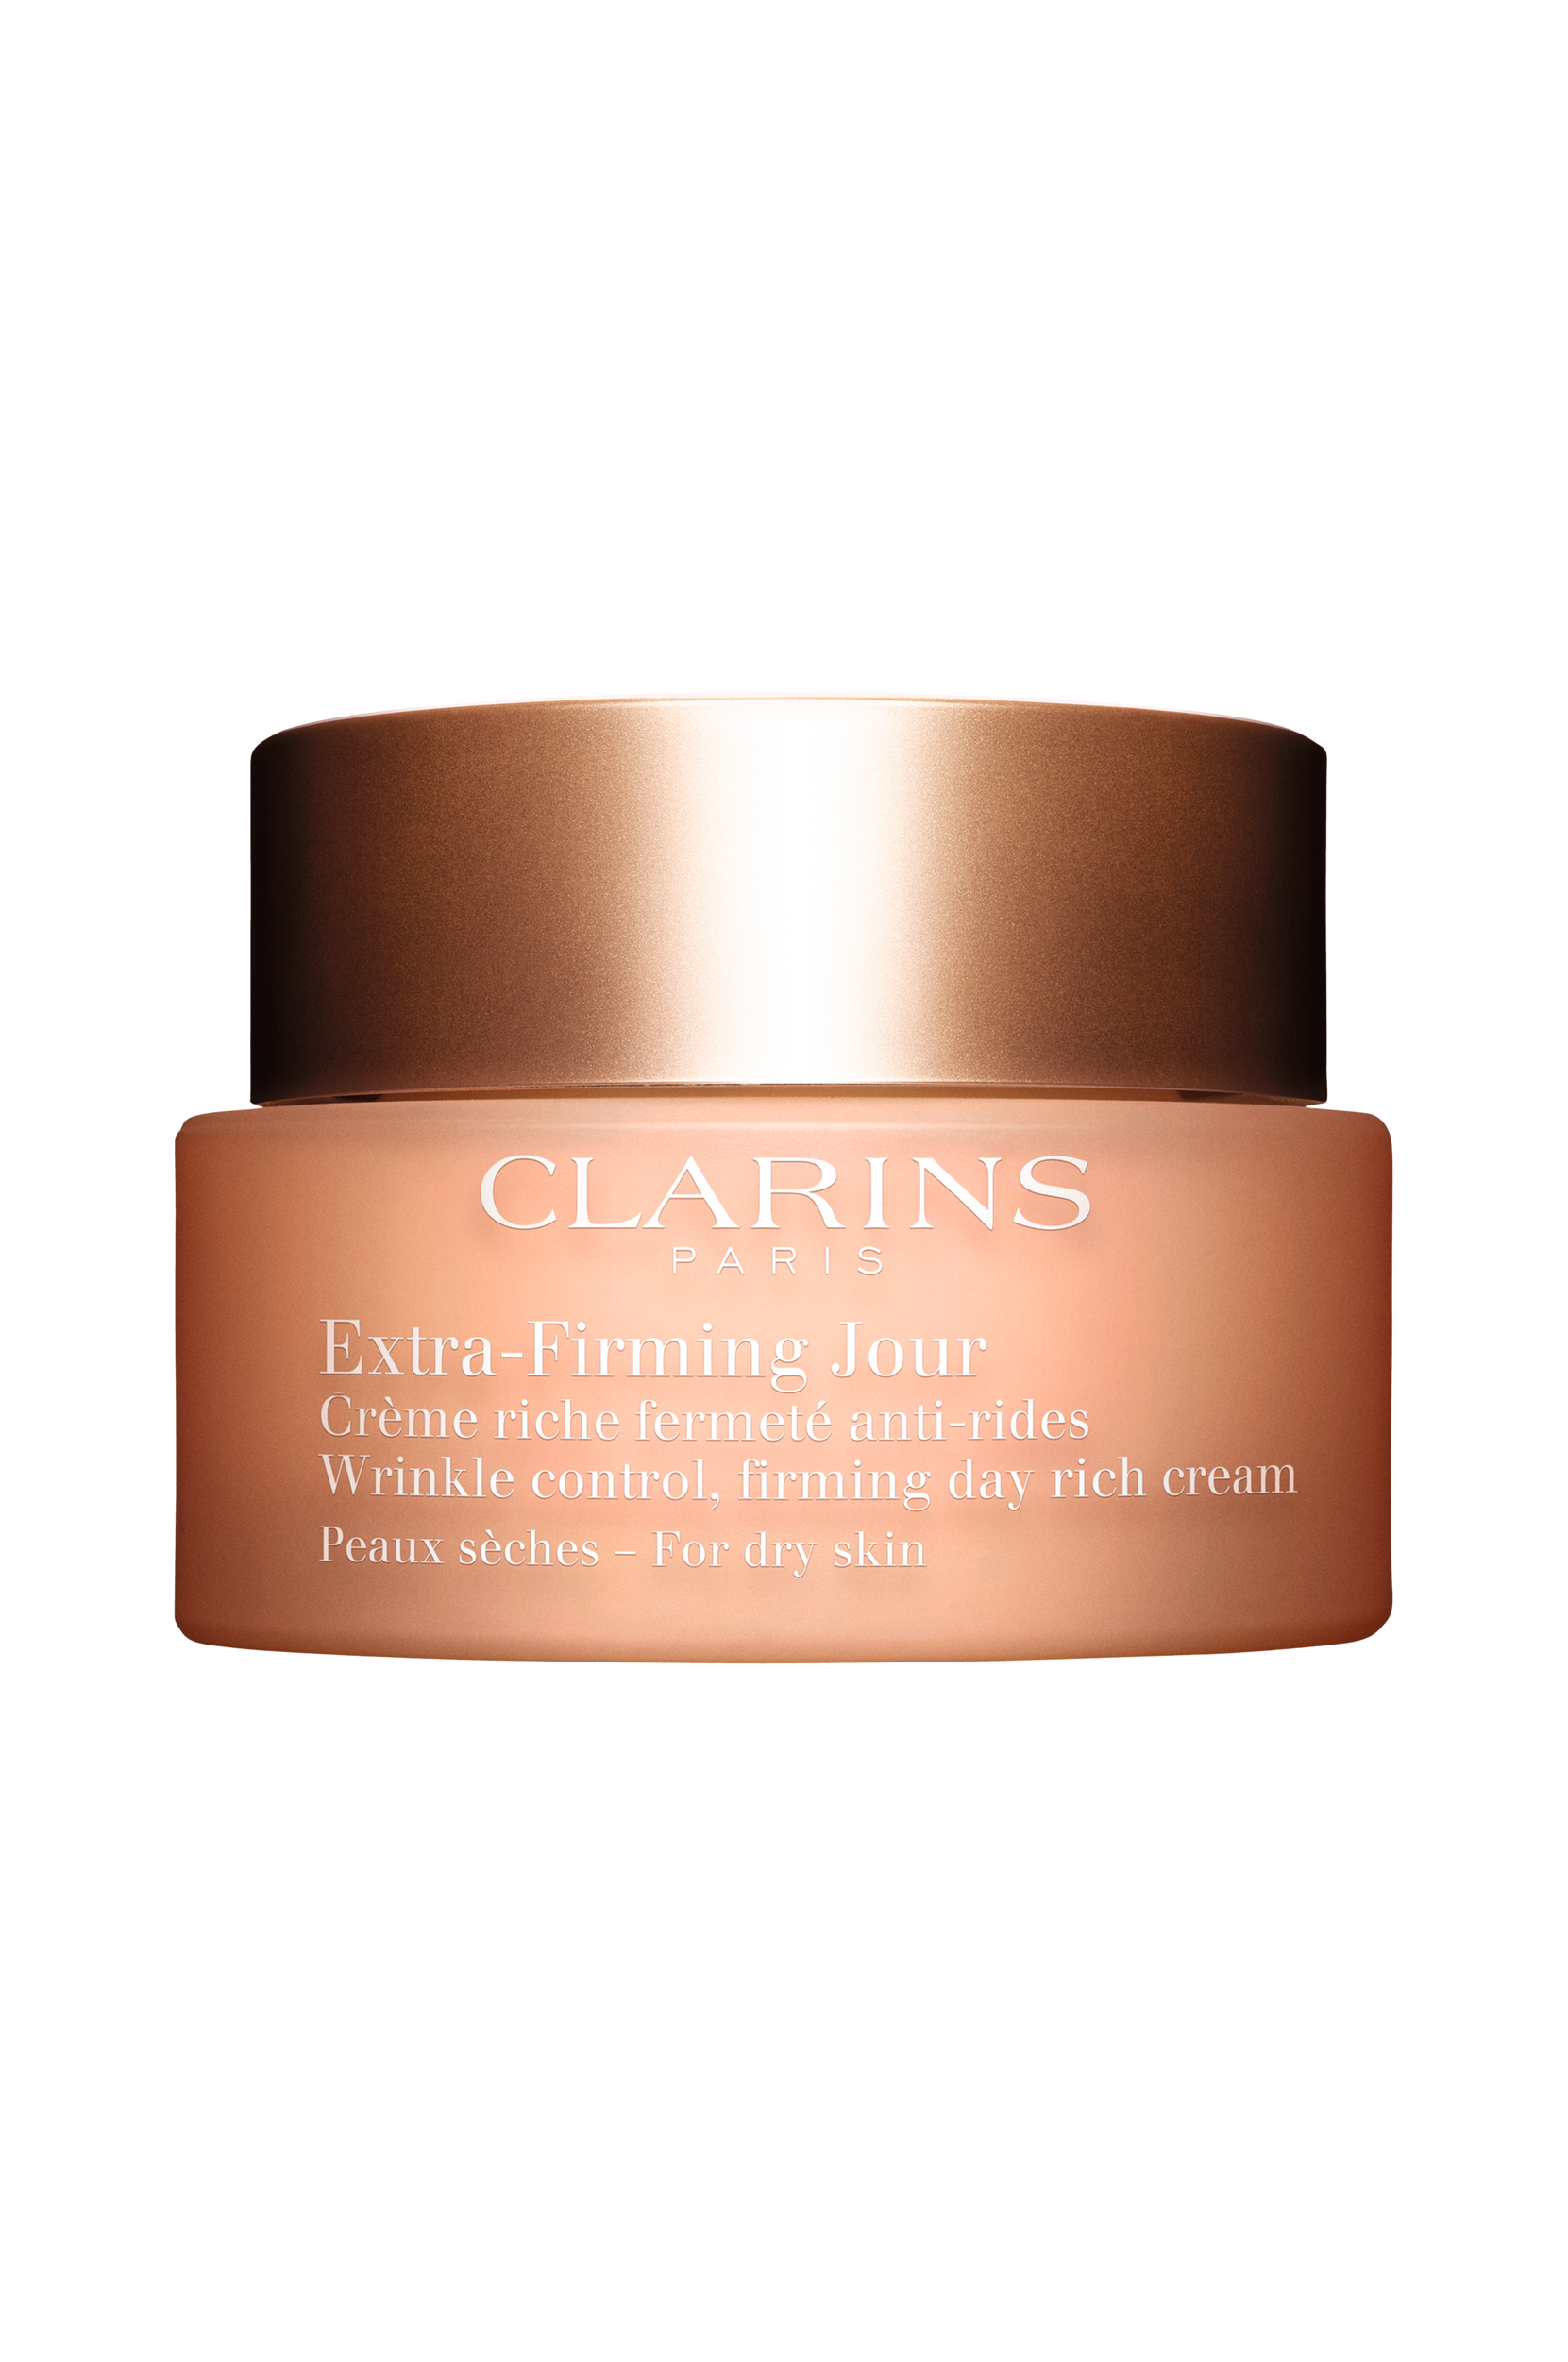 Extra-Firming Jour For dry skin 50 ml